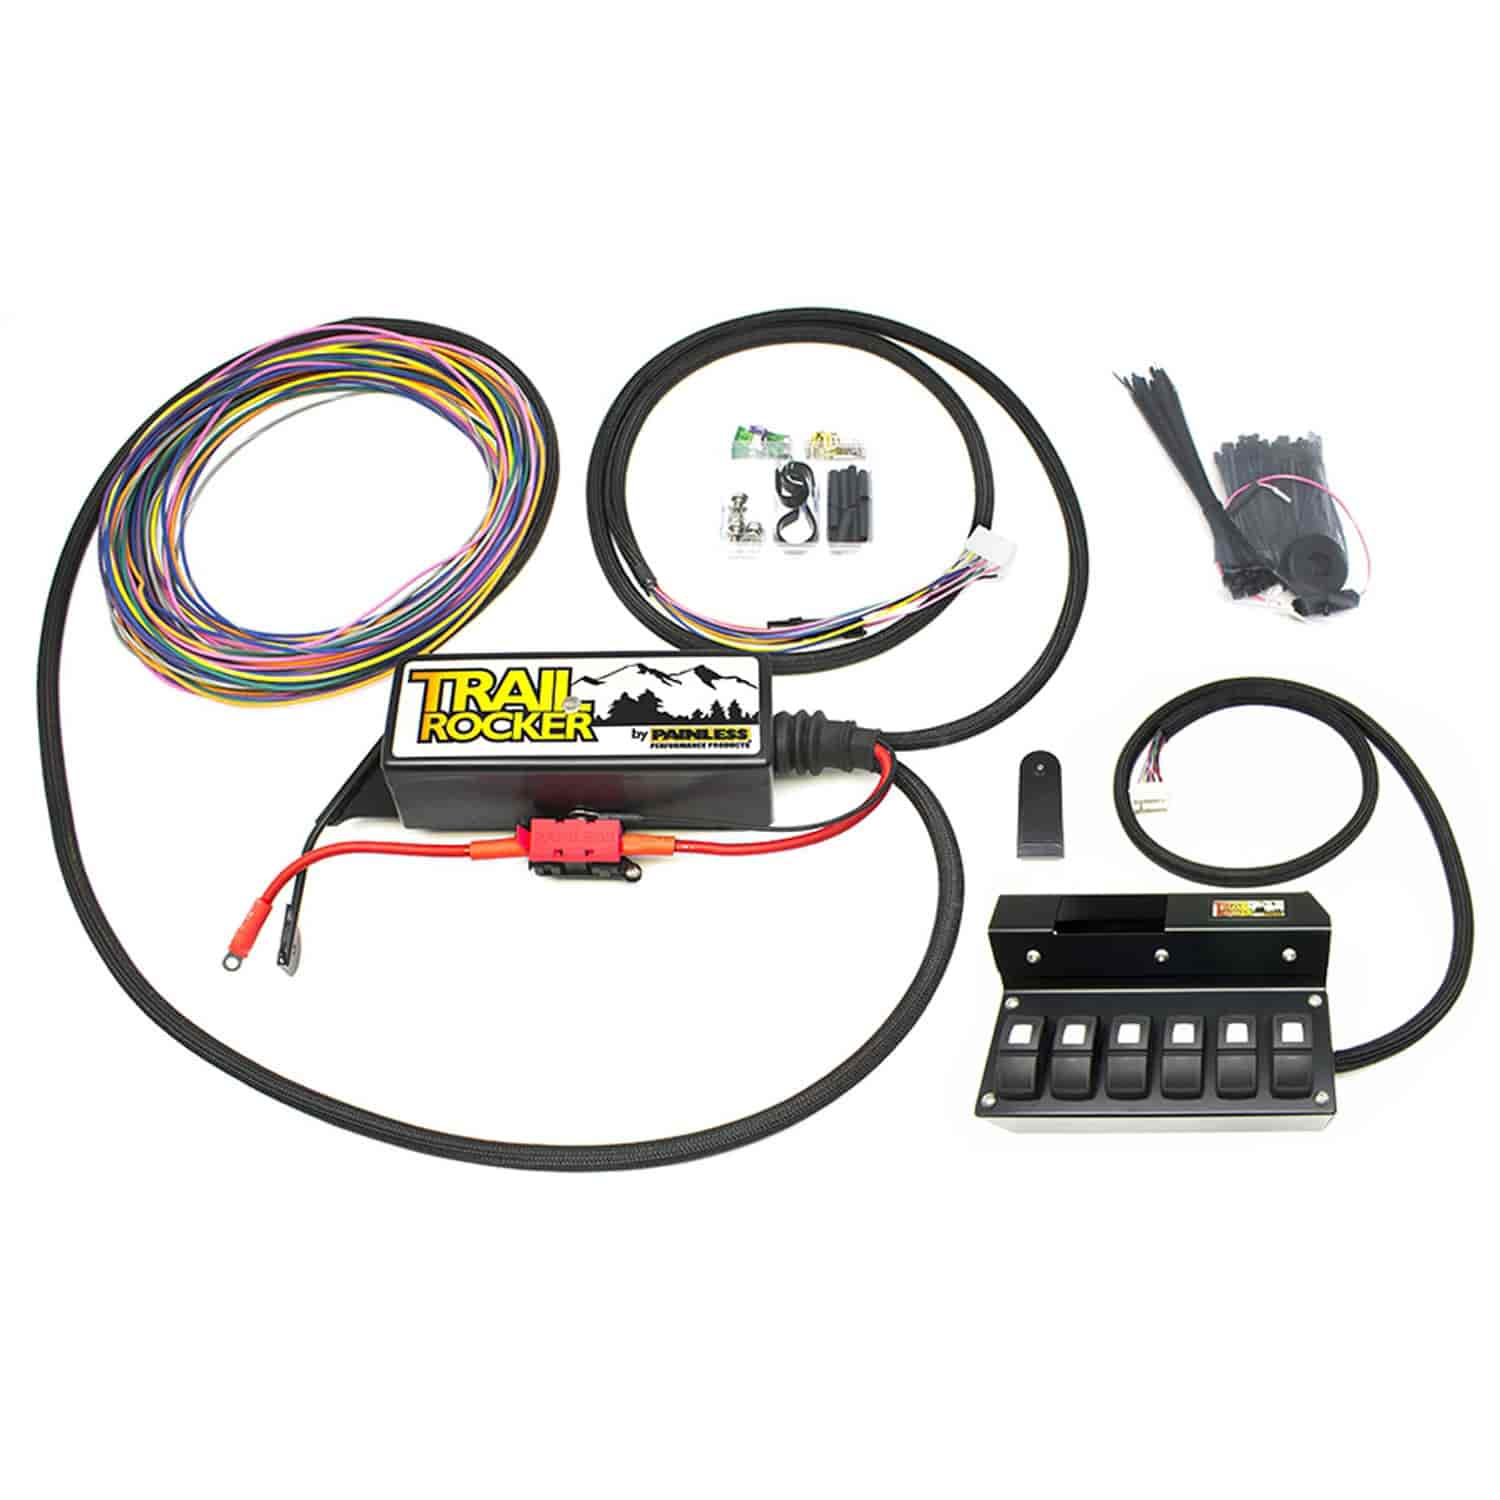 Painless Performance Products 57004 Trail Rocker Accessory Control Electrical Wiring Accessories